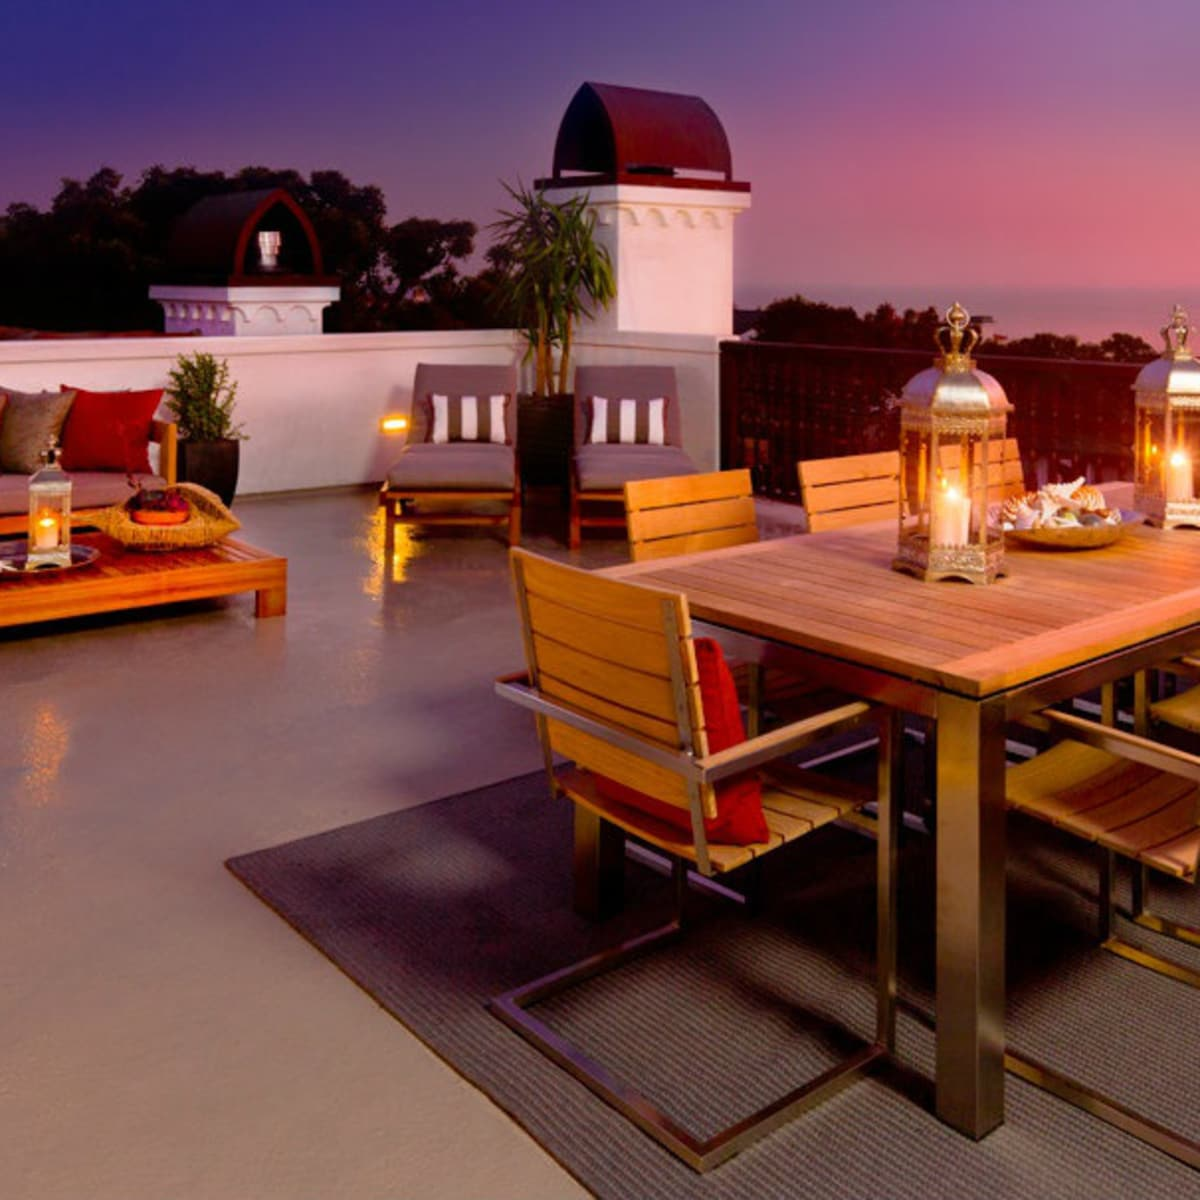 Zillow Hottest Patio Trend 2016 Teak furniture